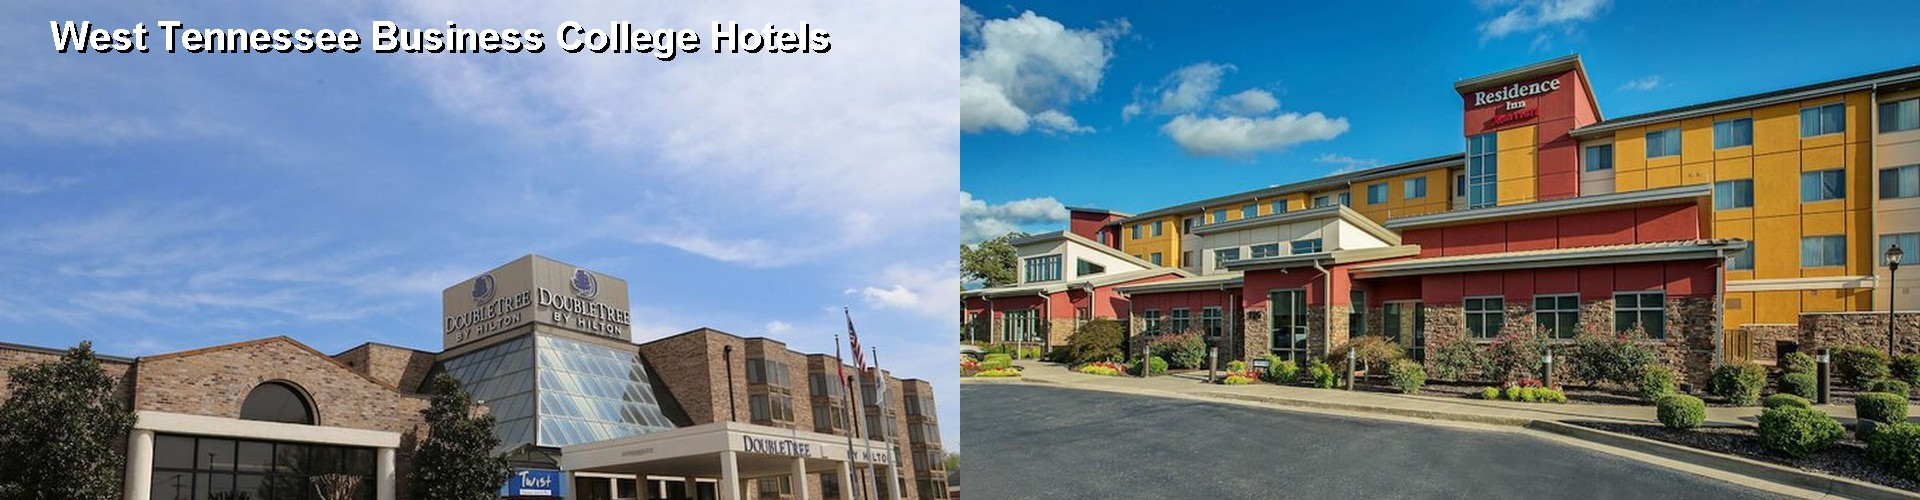 5 Best Hotels near West Tennessee Business College